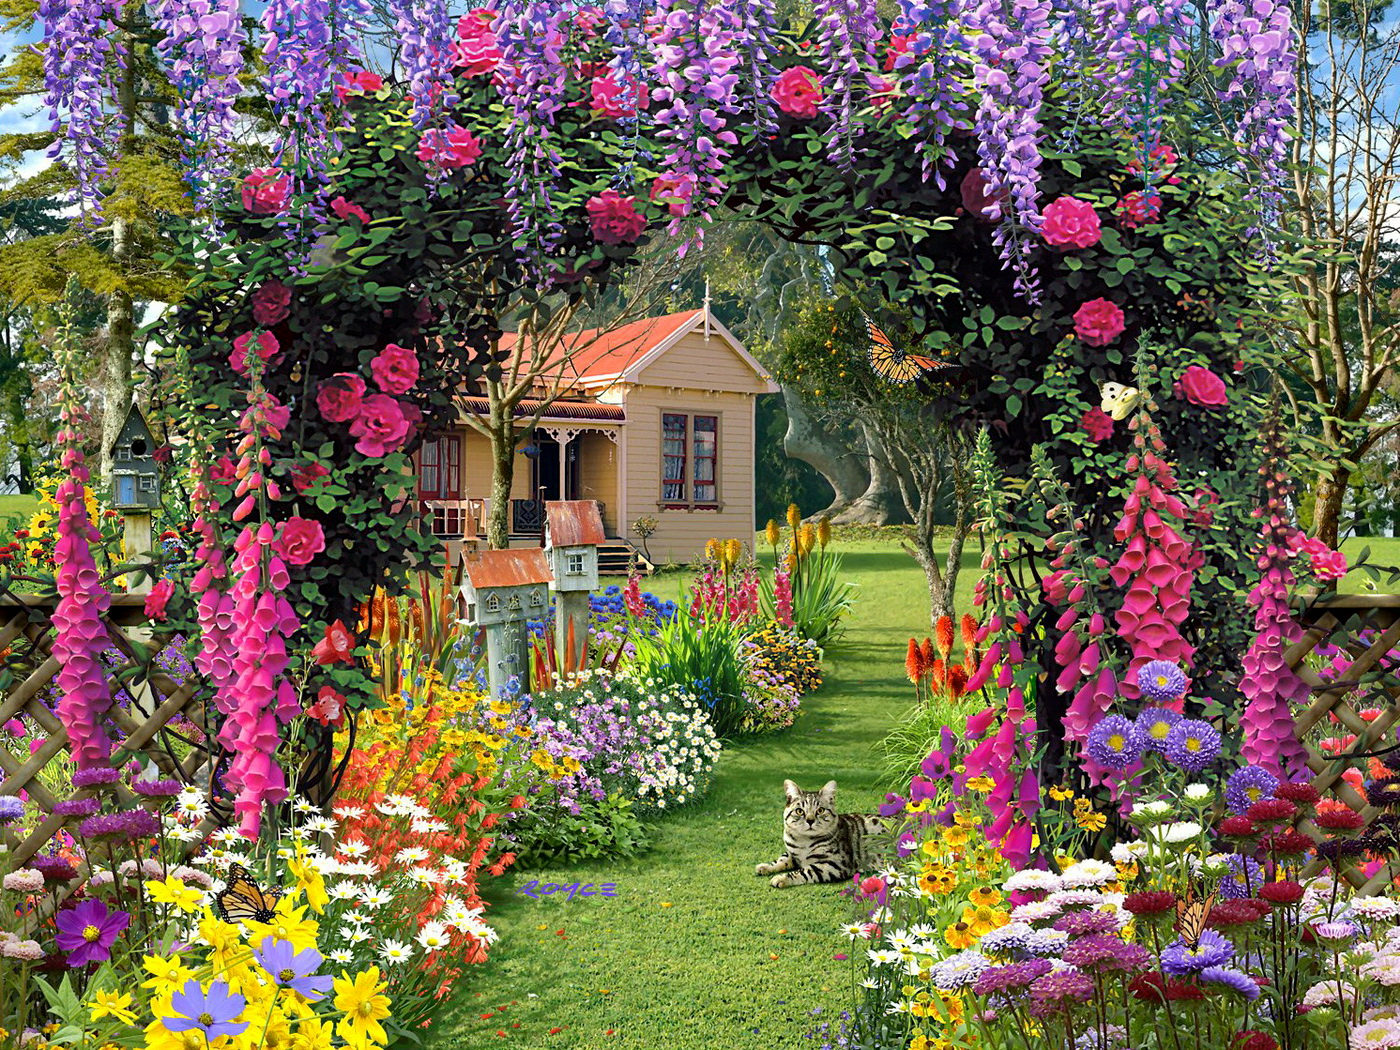 Wallpapers Fair: Luxurious Flower Garden HD Widescreen Wallpaper